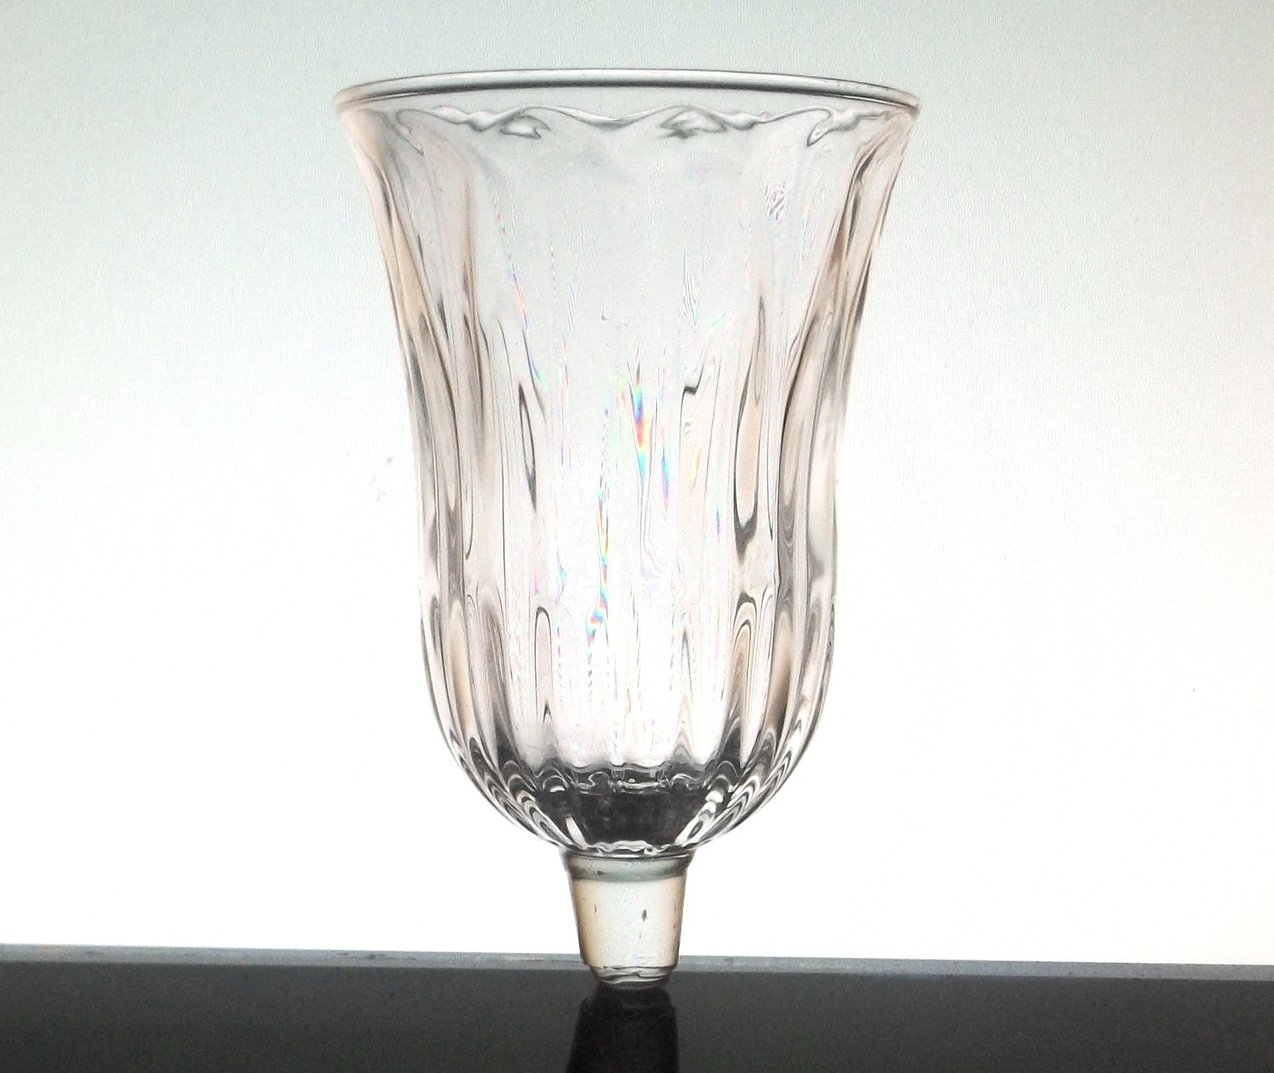 home interiors peg votive candle holder clear tiffany home interiors peg votive candle holder swirled pattern clear